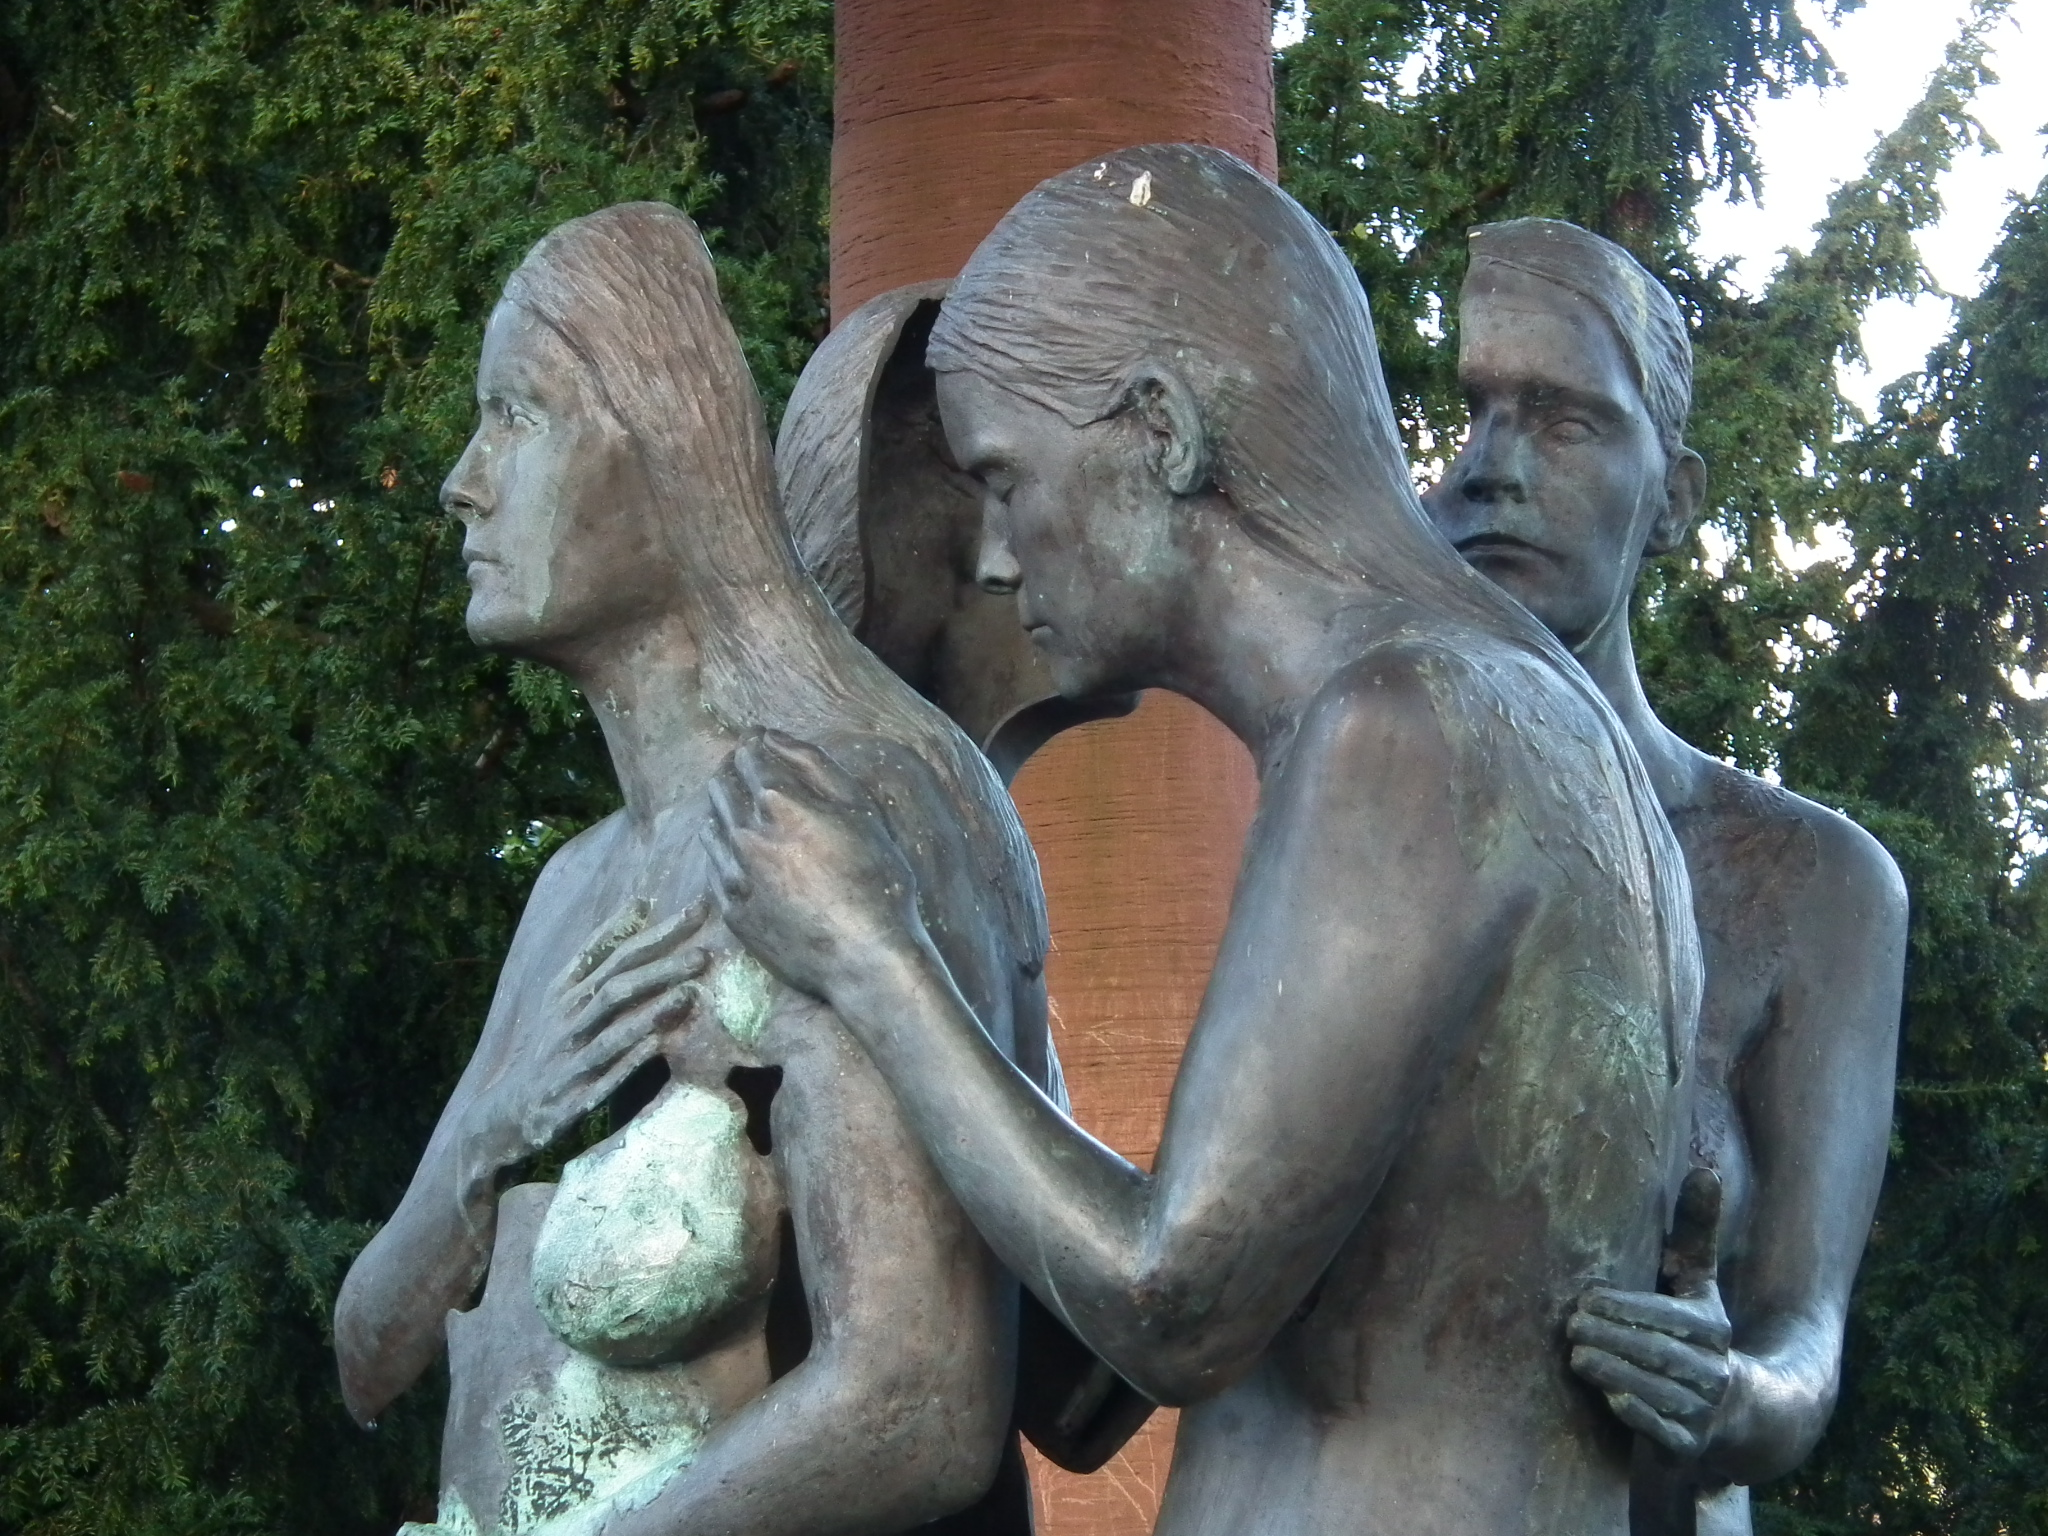 The Muses statue